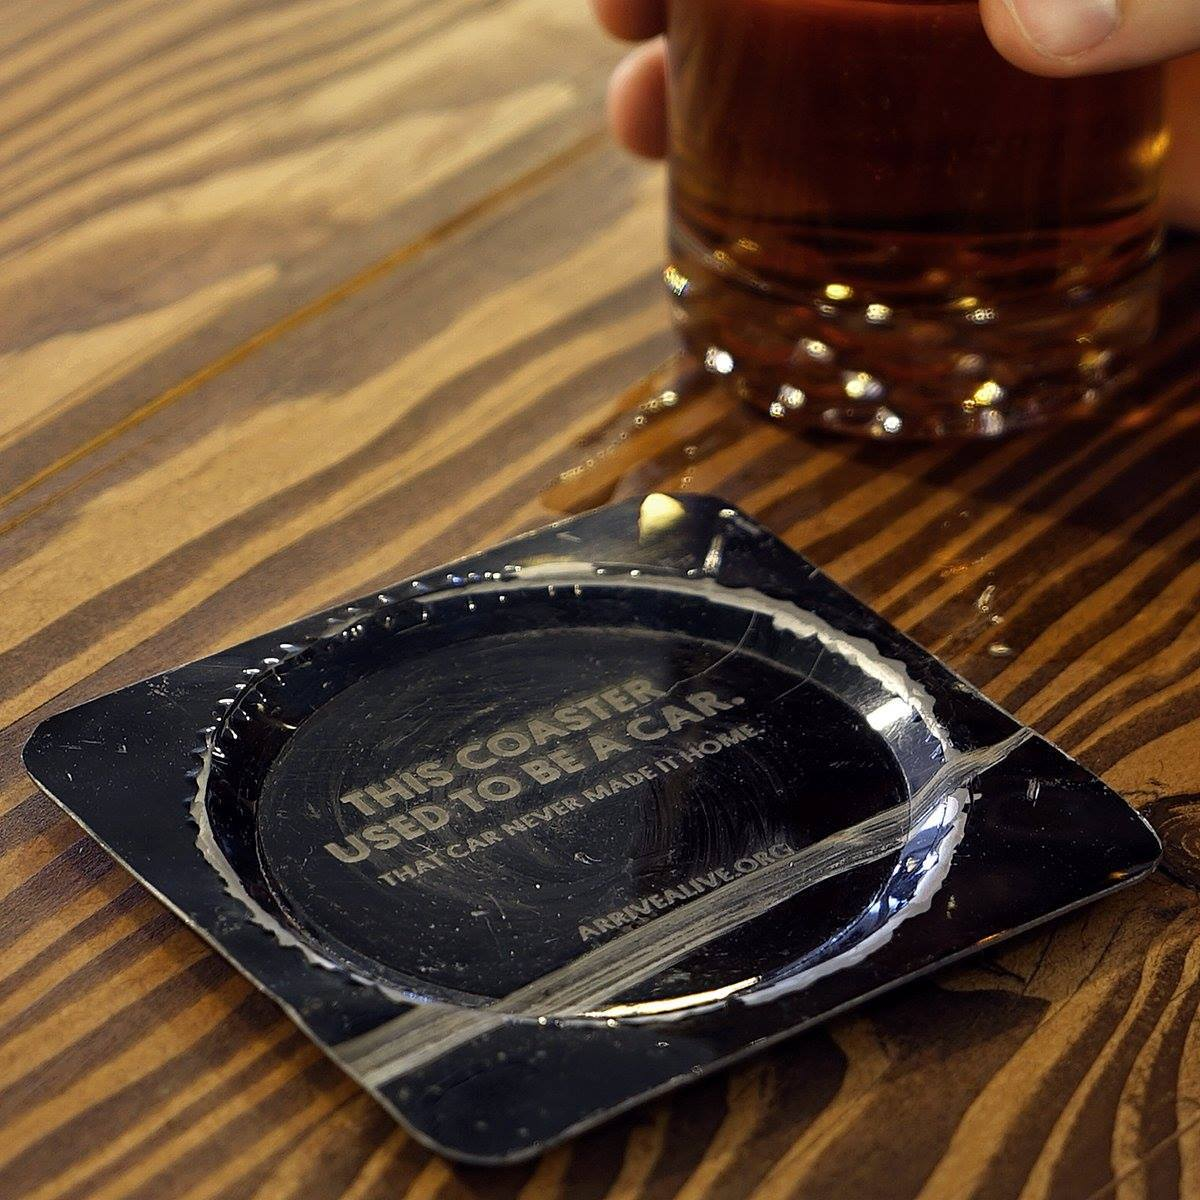 Image of a coaster made from a car